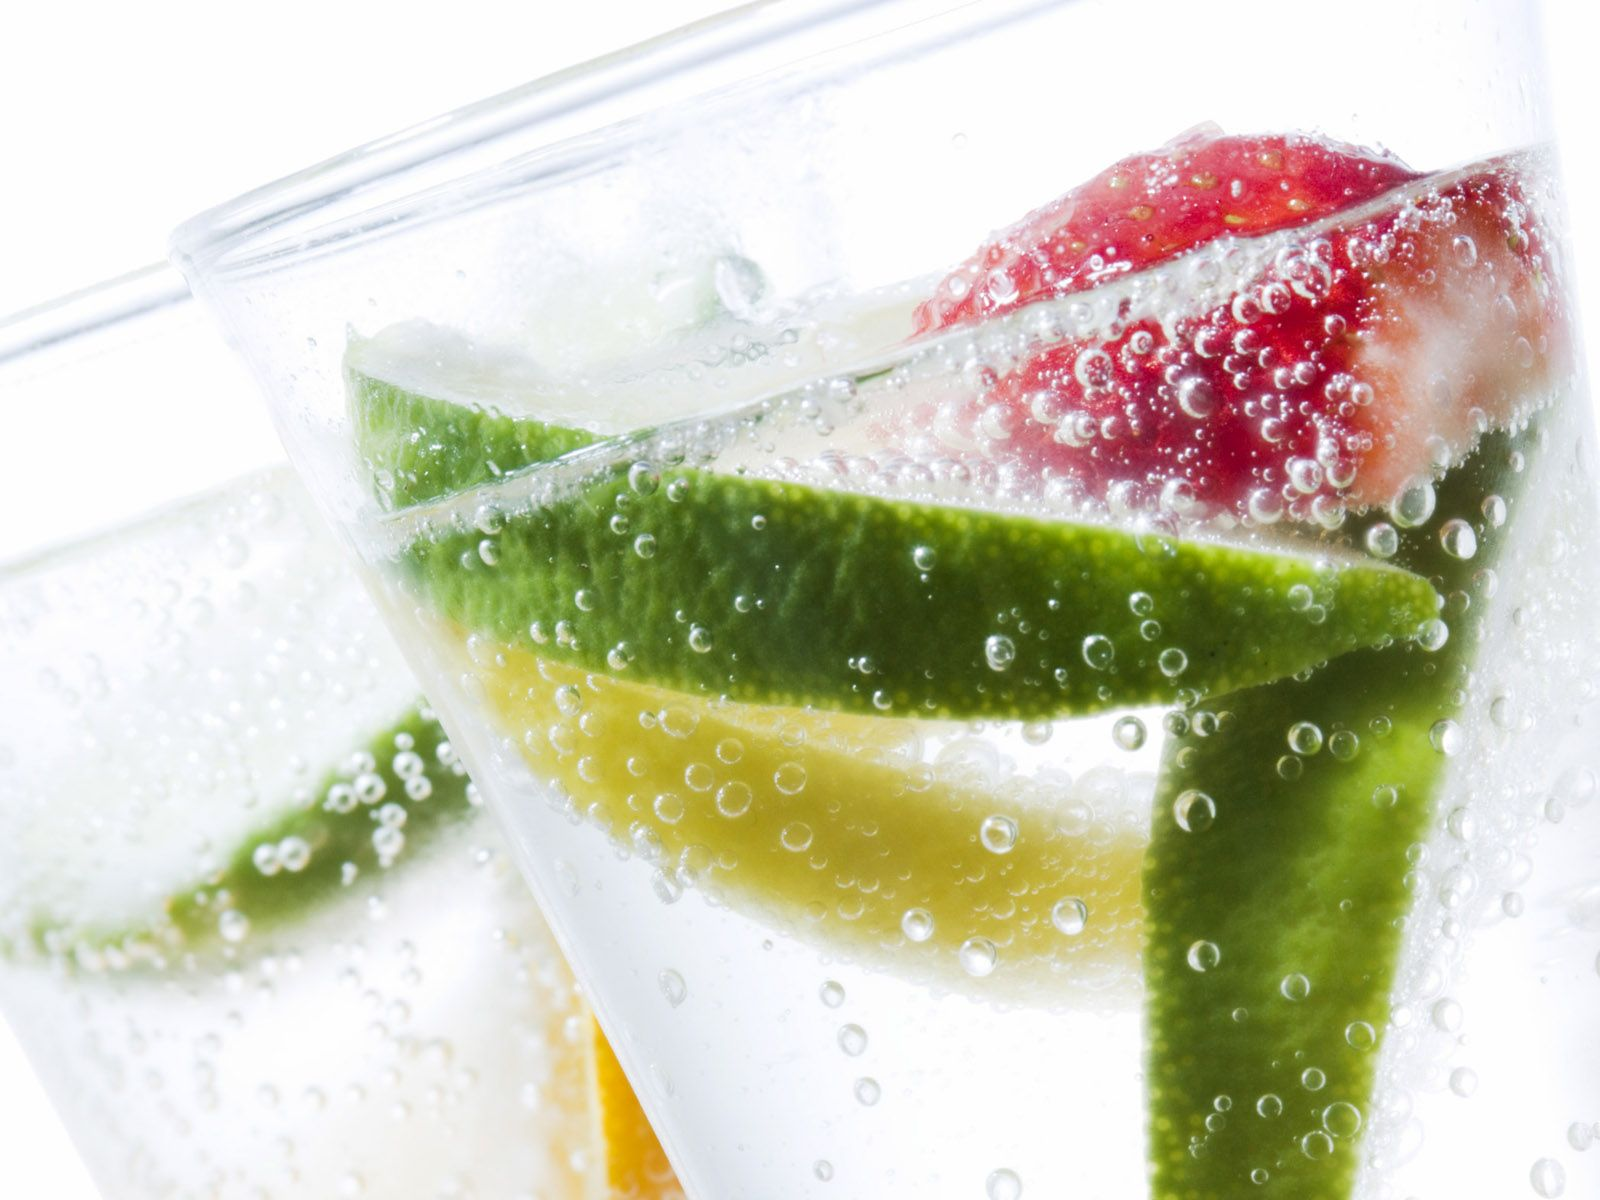 Fresh Fruits in a Glass Wallpapers   1600x1200   179020 1600x1200